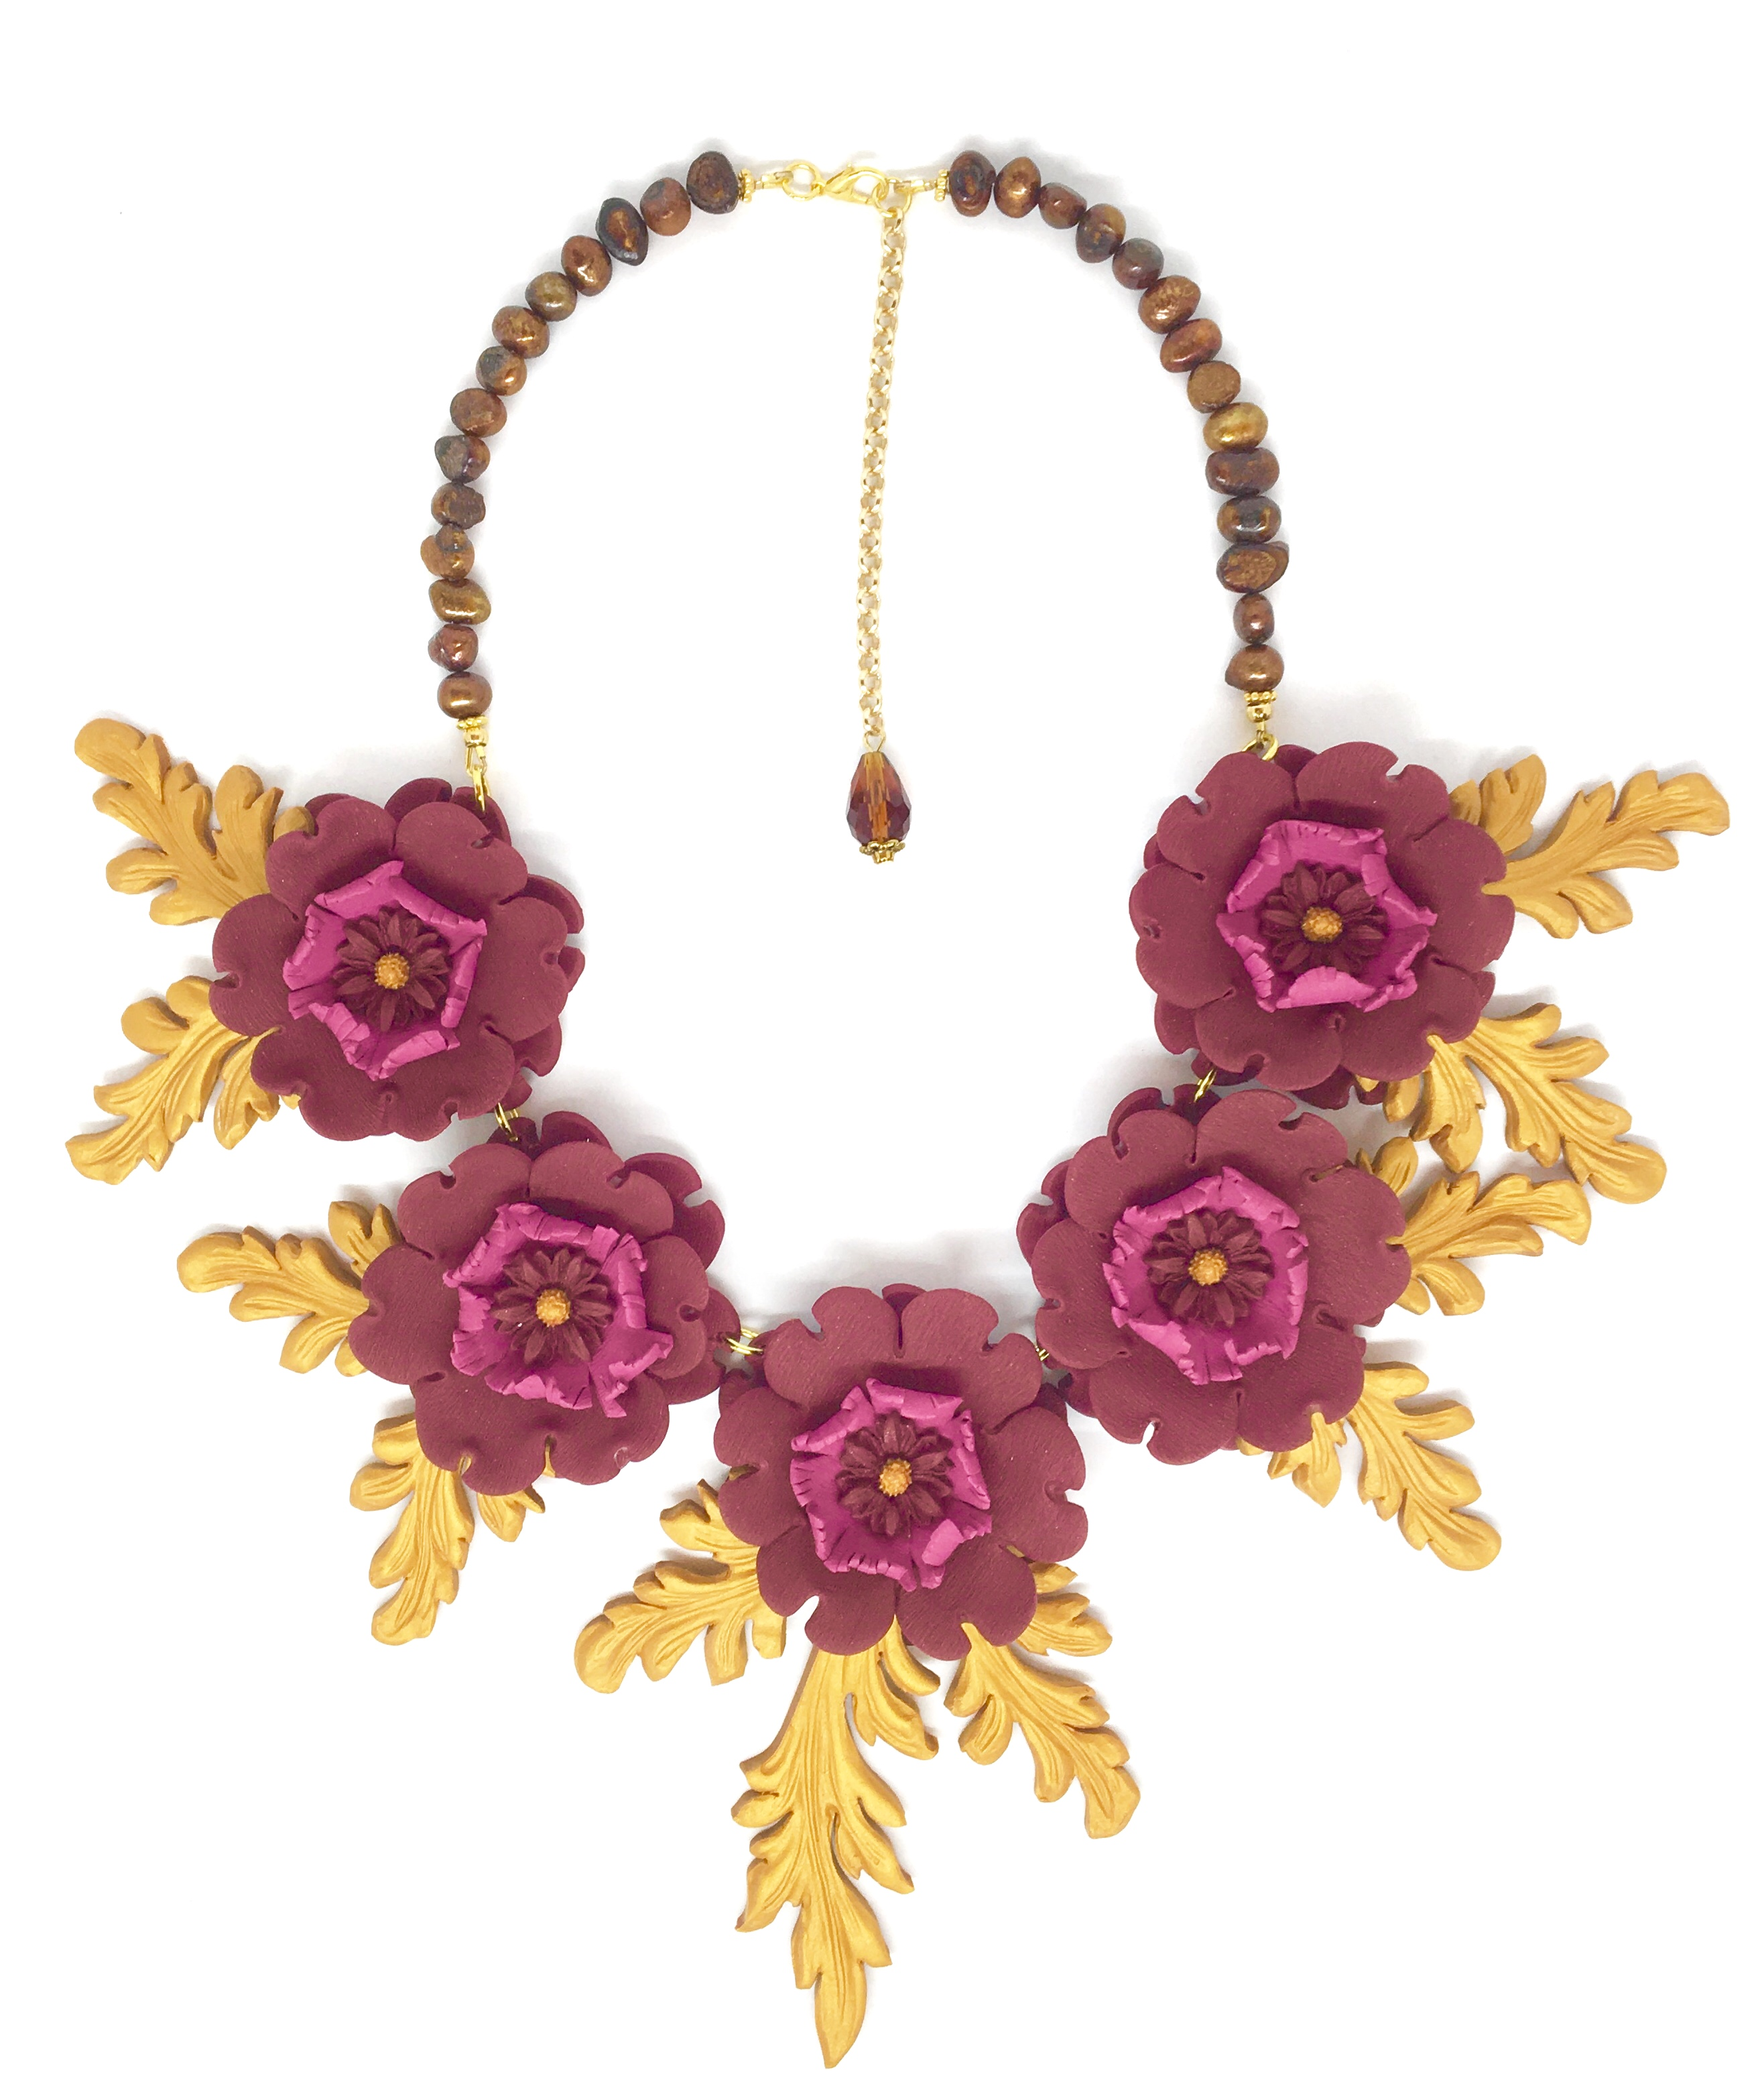 Flowers and flame accents necklace